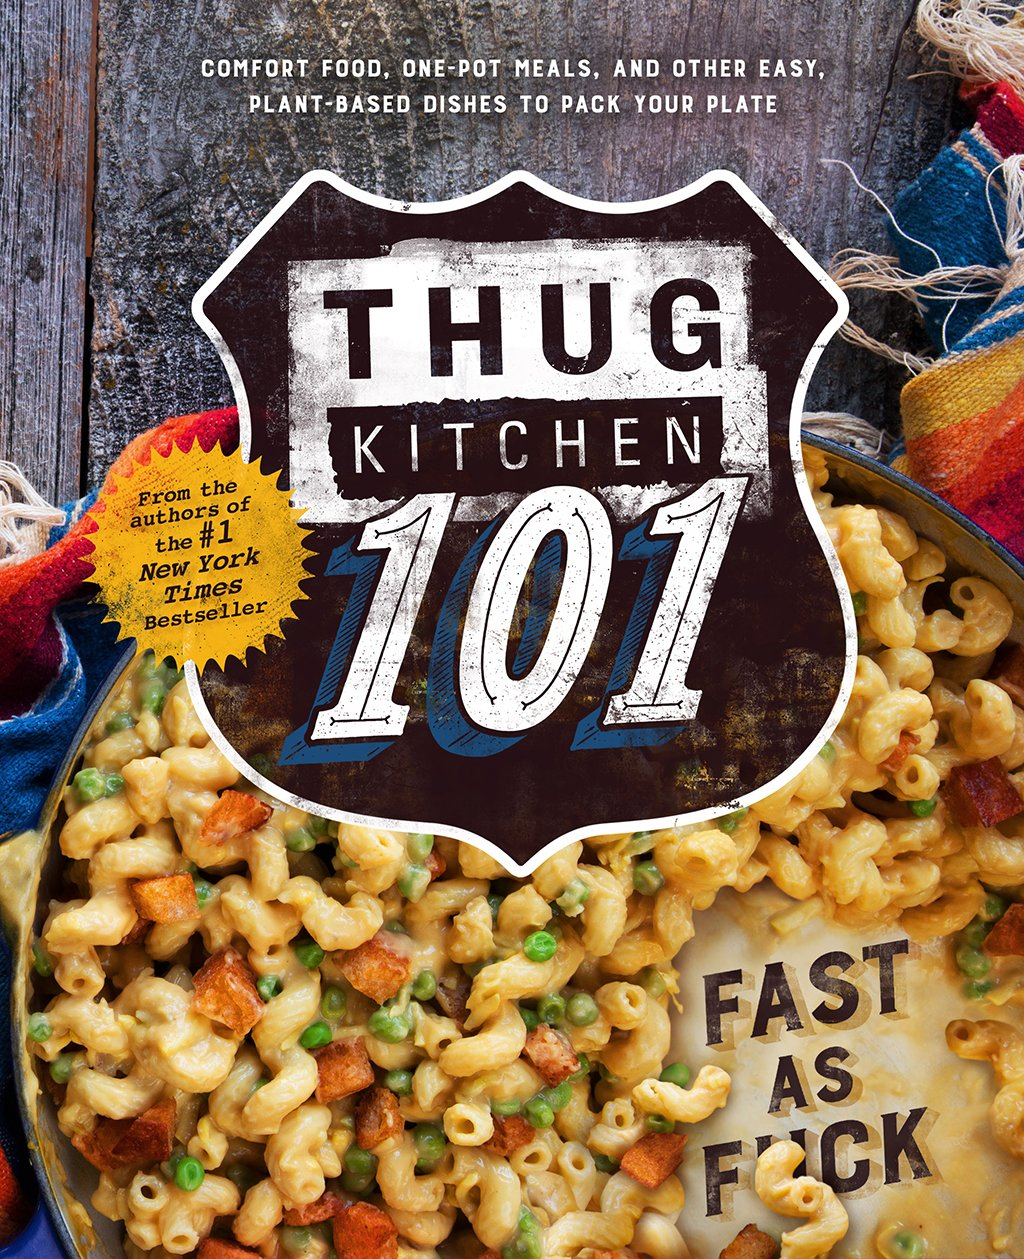 Thug Kitchen Cookbook New York Times39; Bestselling Authors  InsideHook